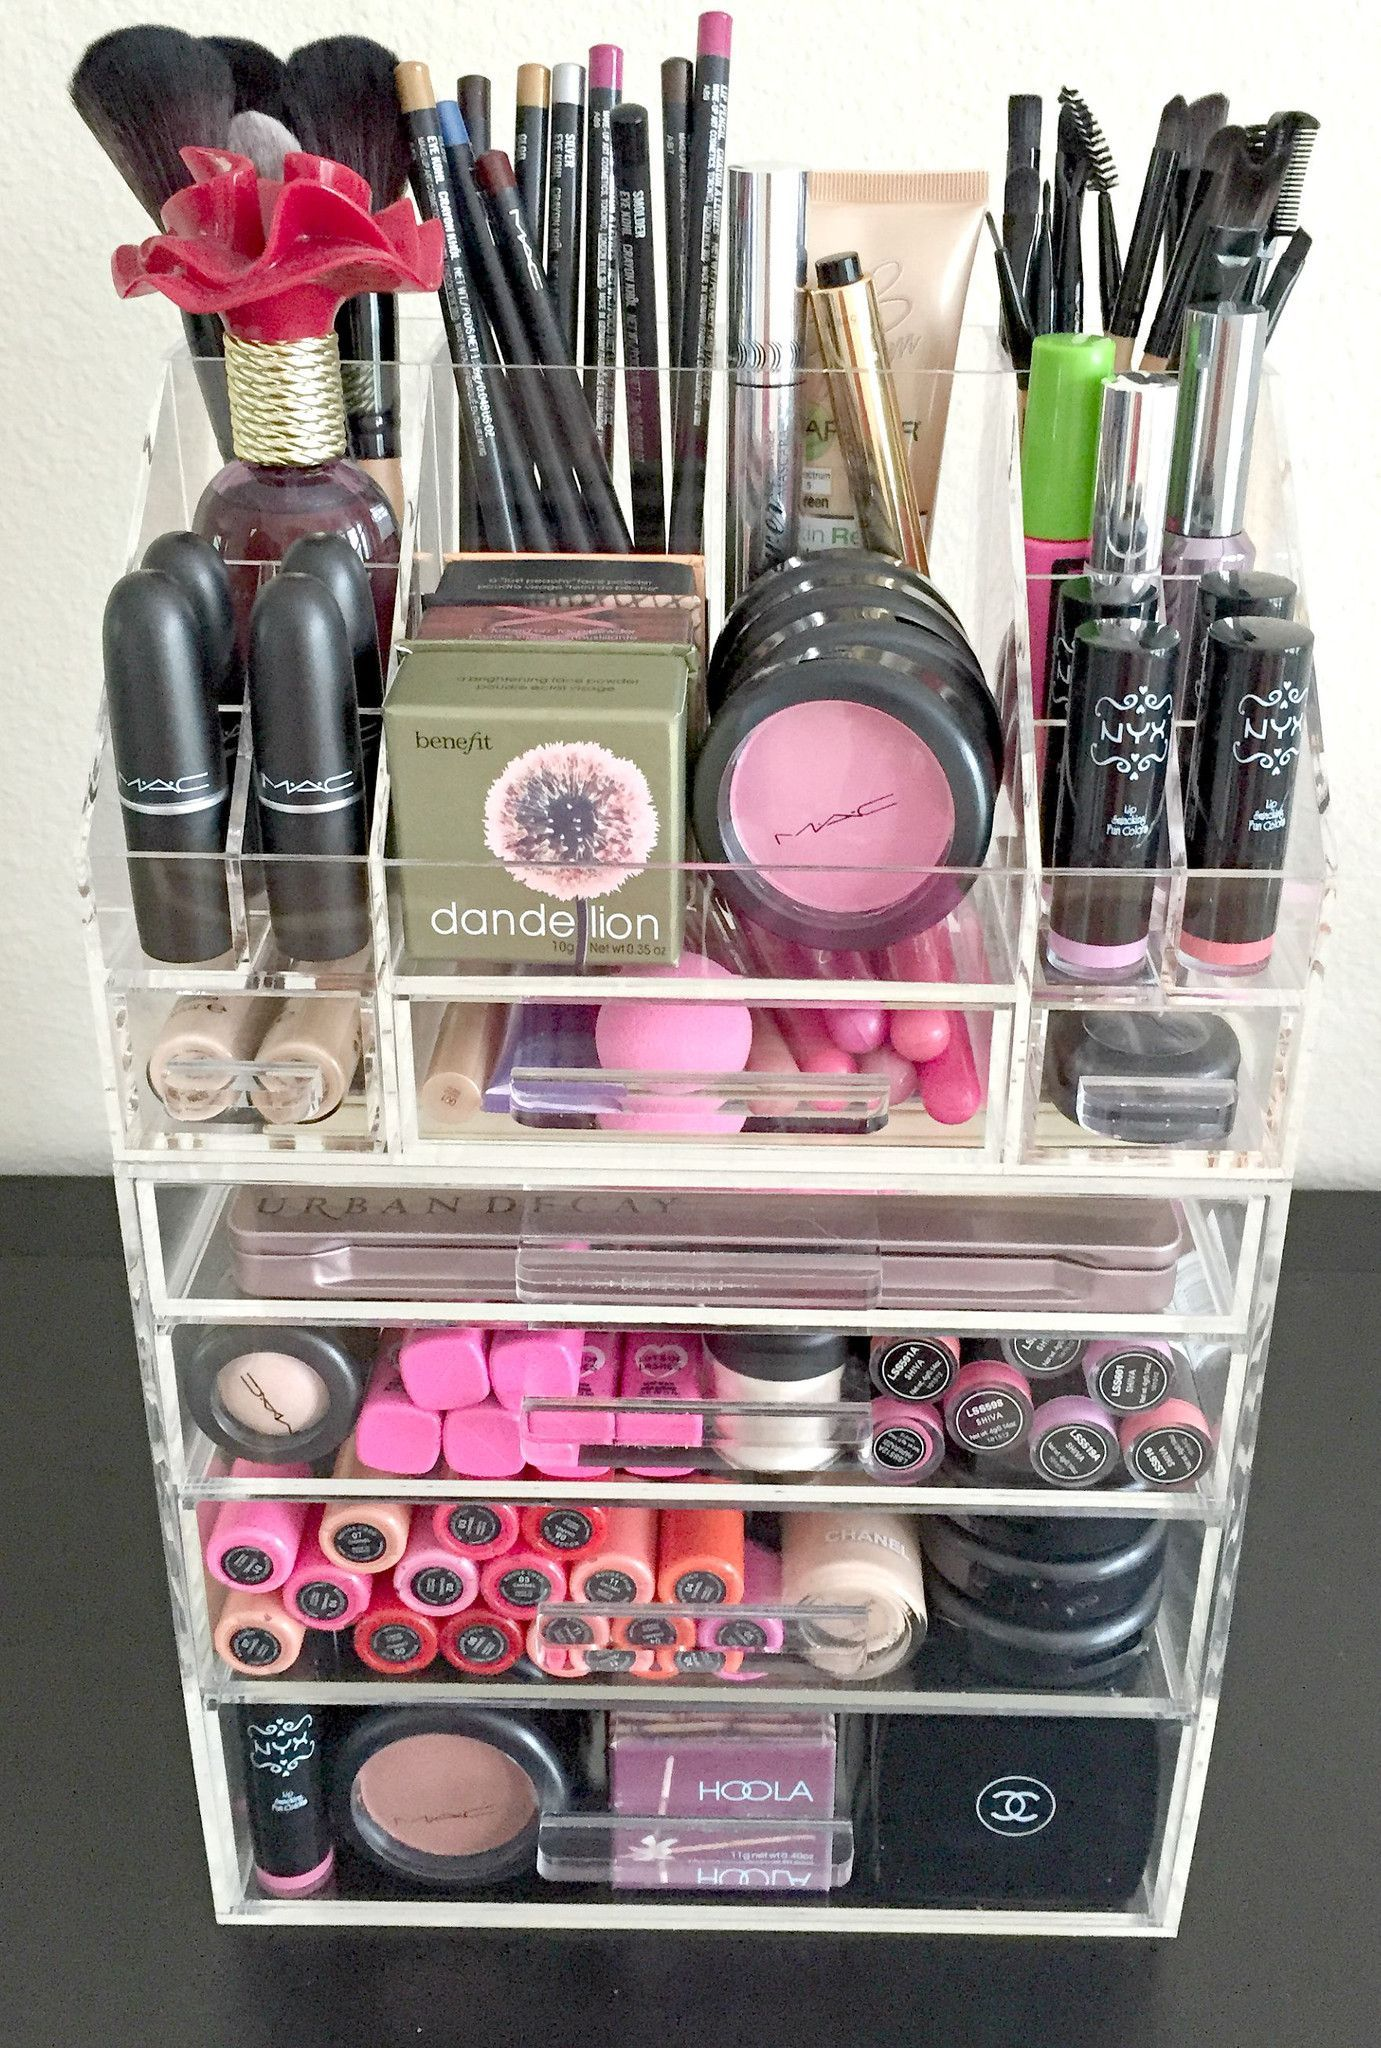 Design Makeup Organization acrylic makeup organizer large 4 drawer with storage modular tray tray